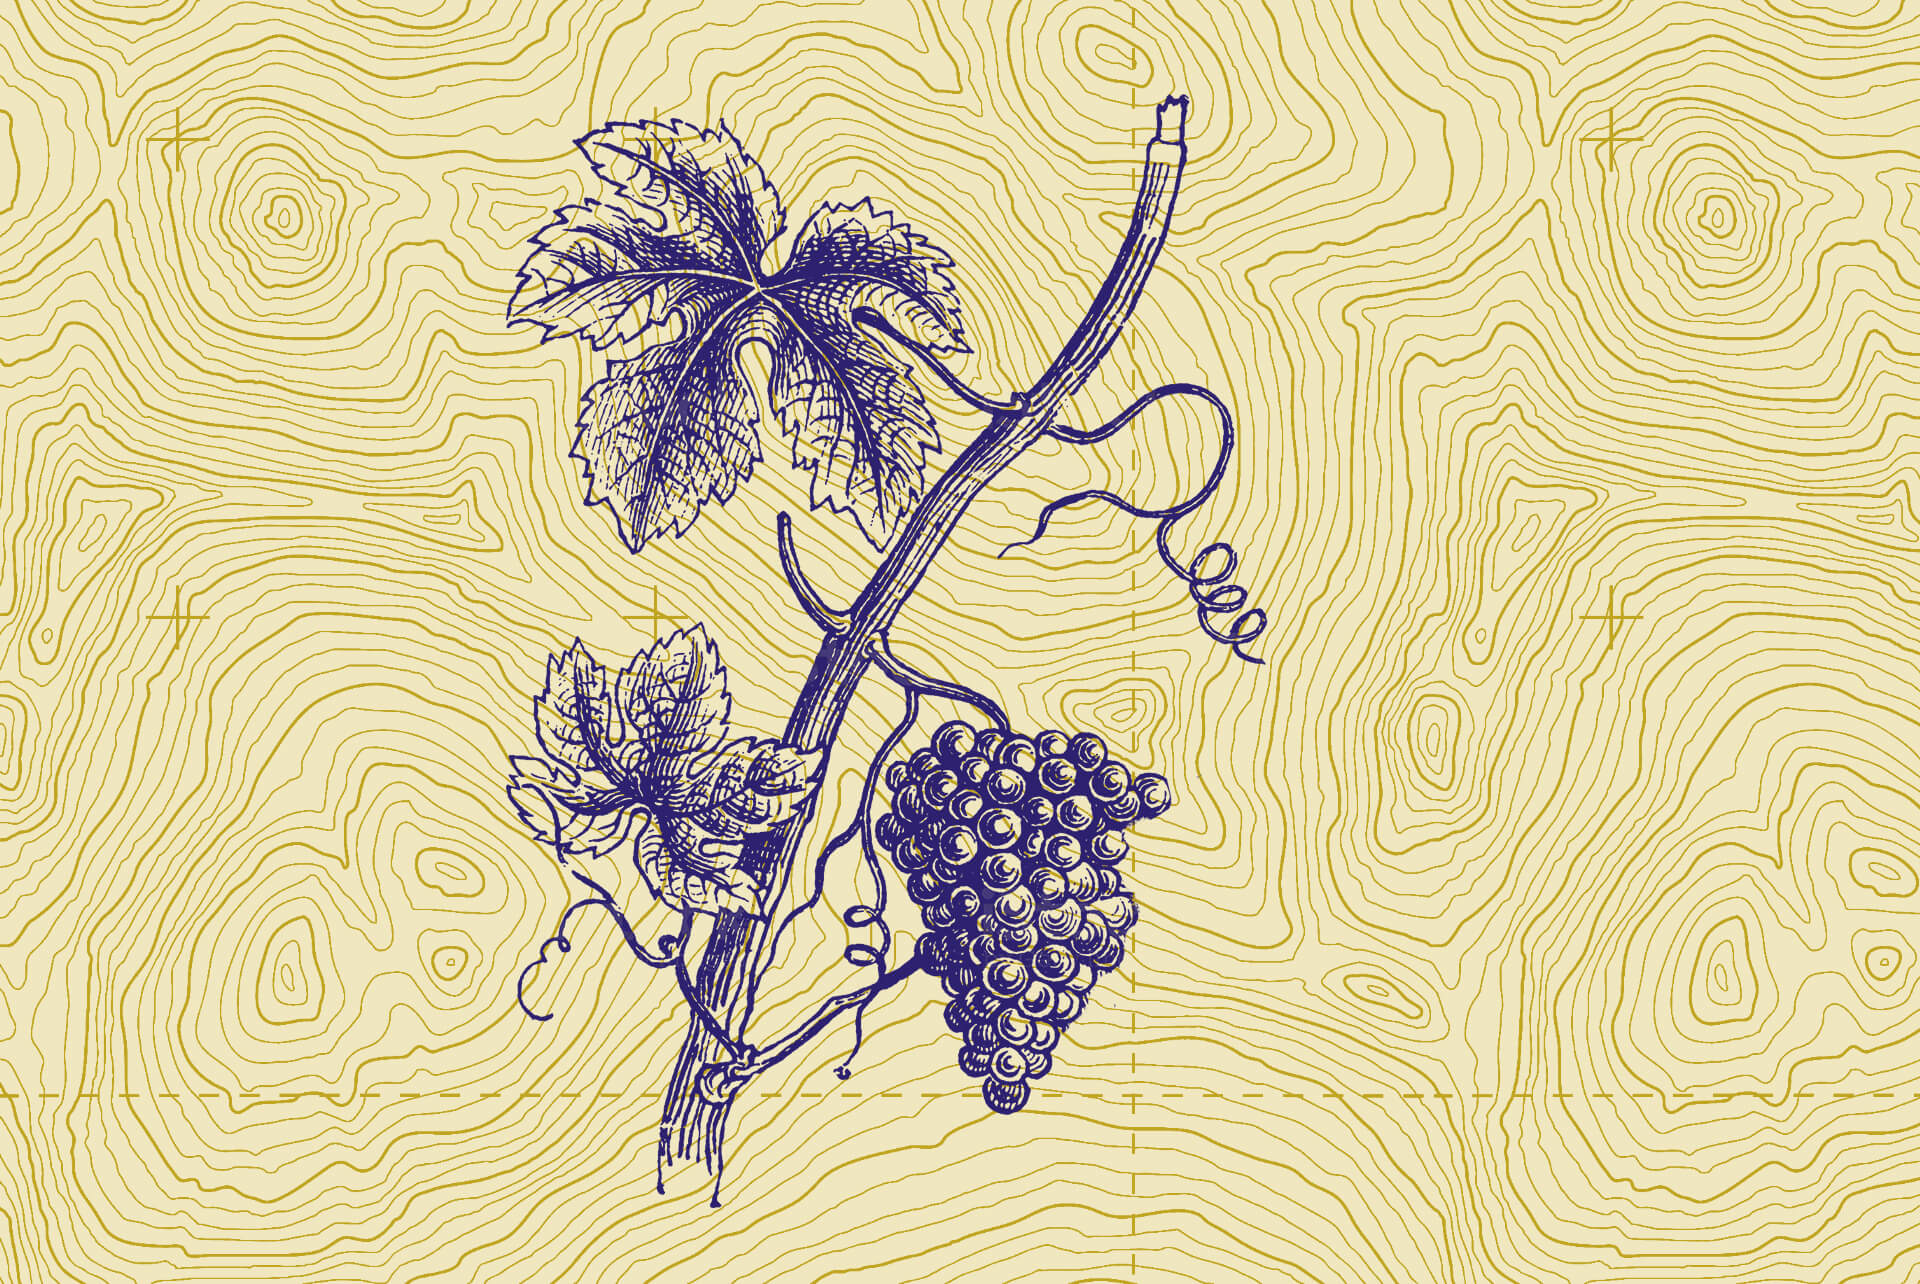 Bunch of grapes illustration